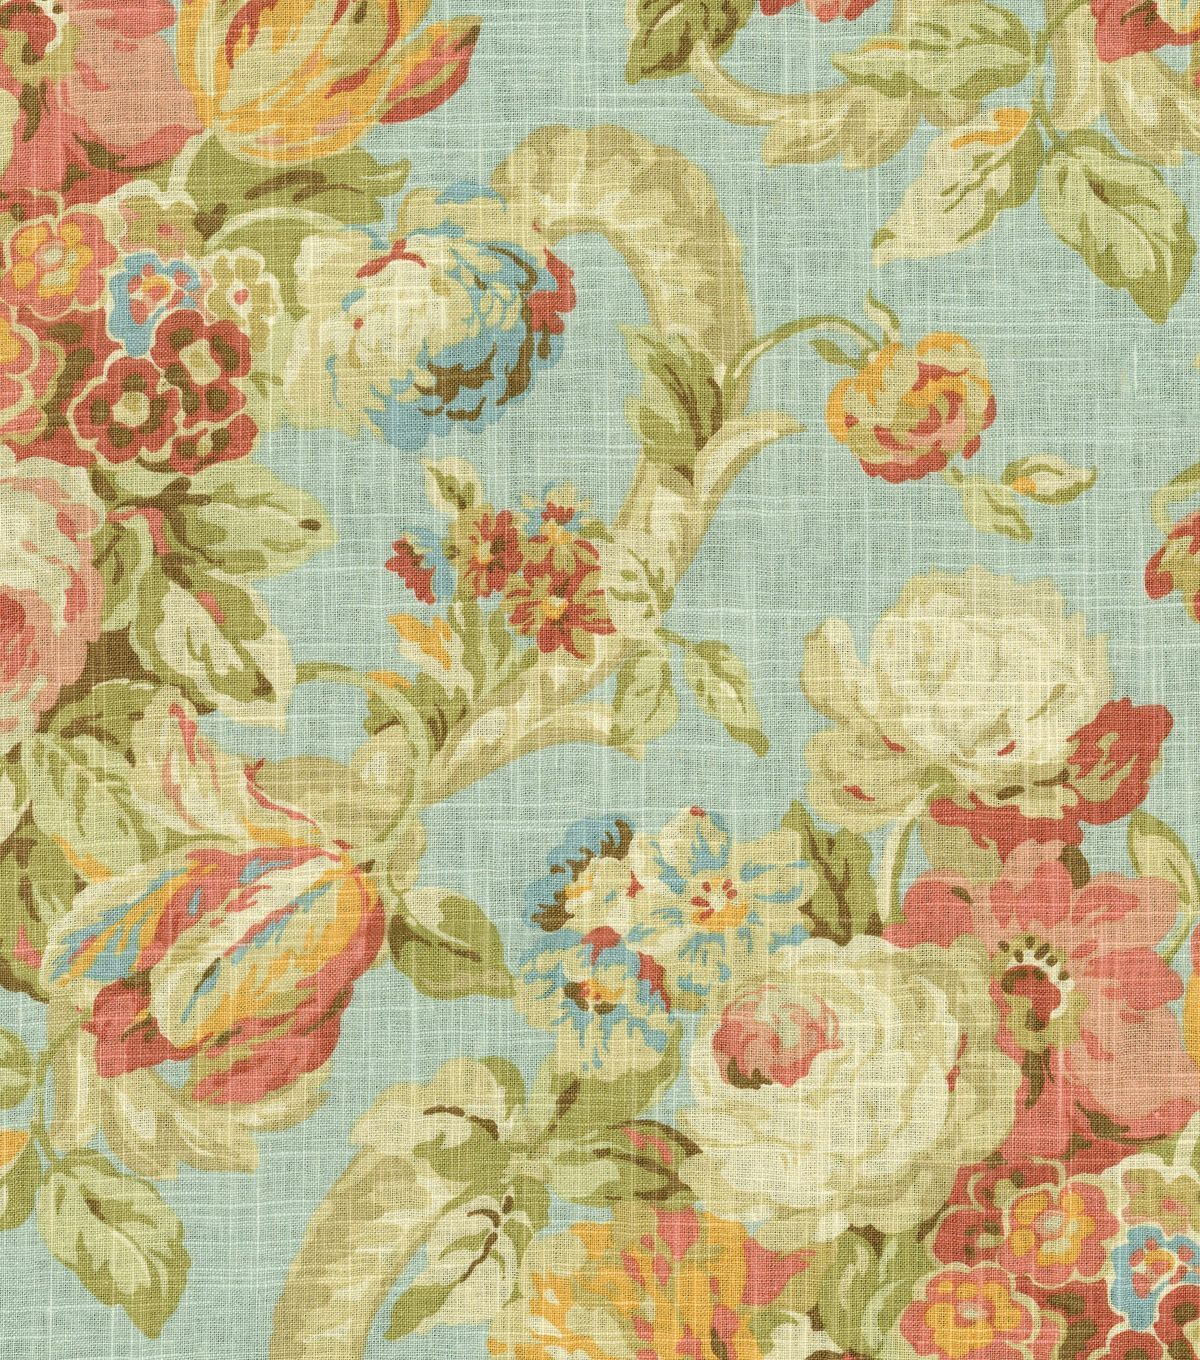 Home Dec Print FabricWaverly Spring Bling Cir Vapor at